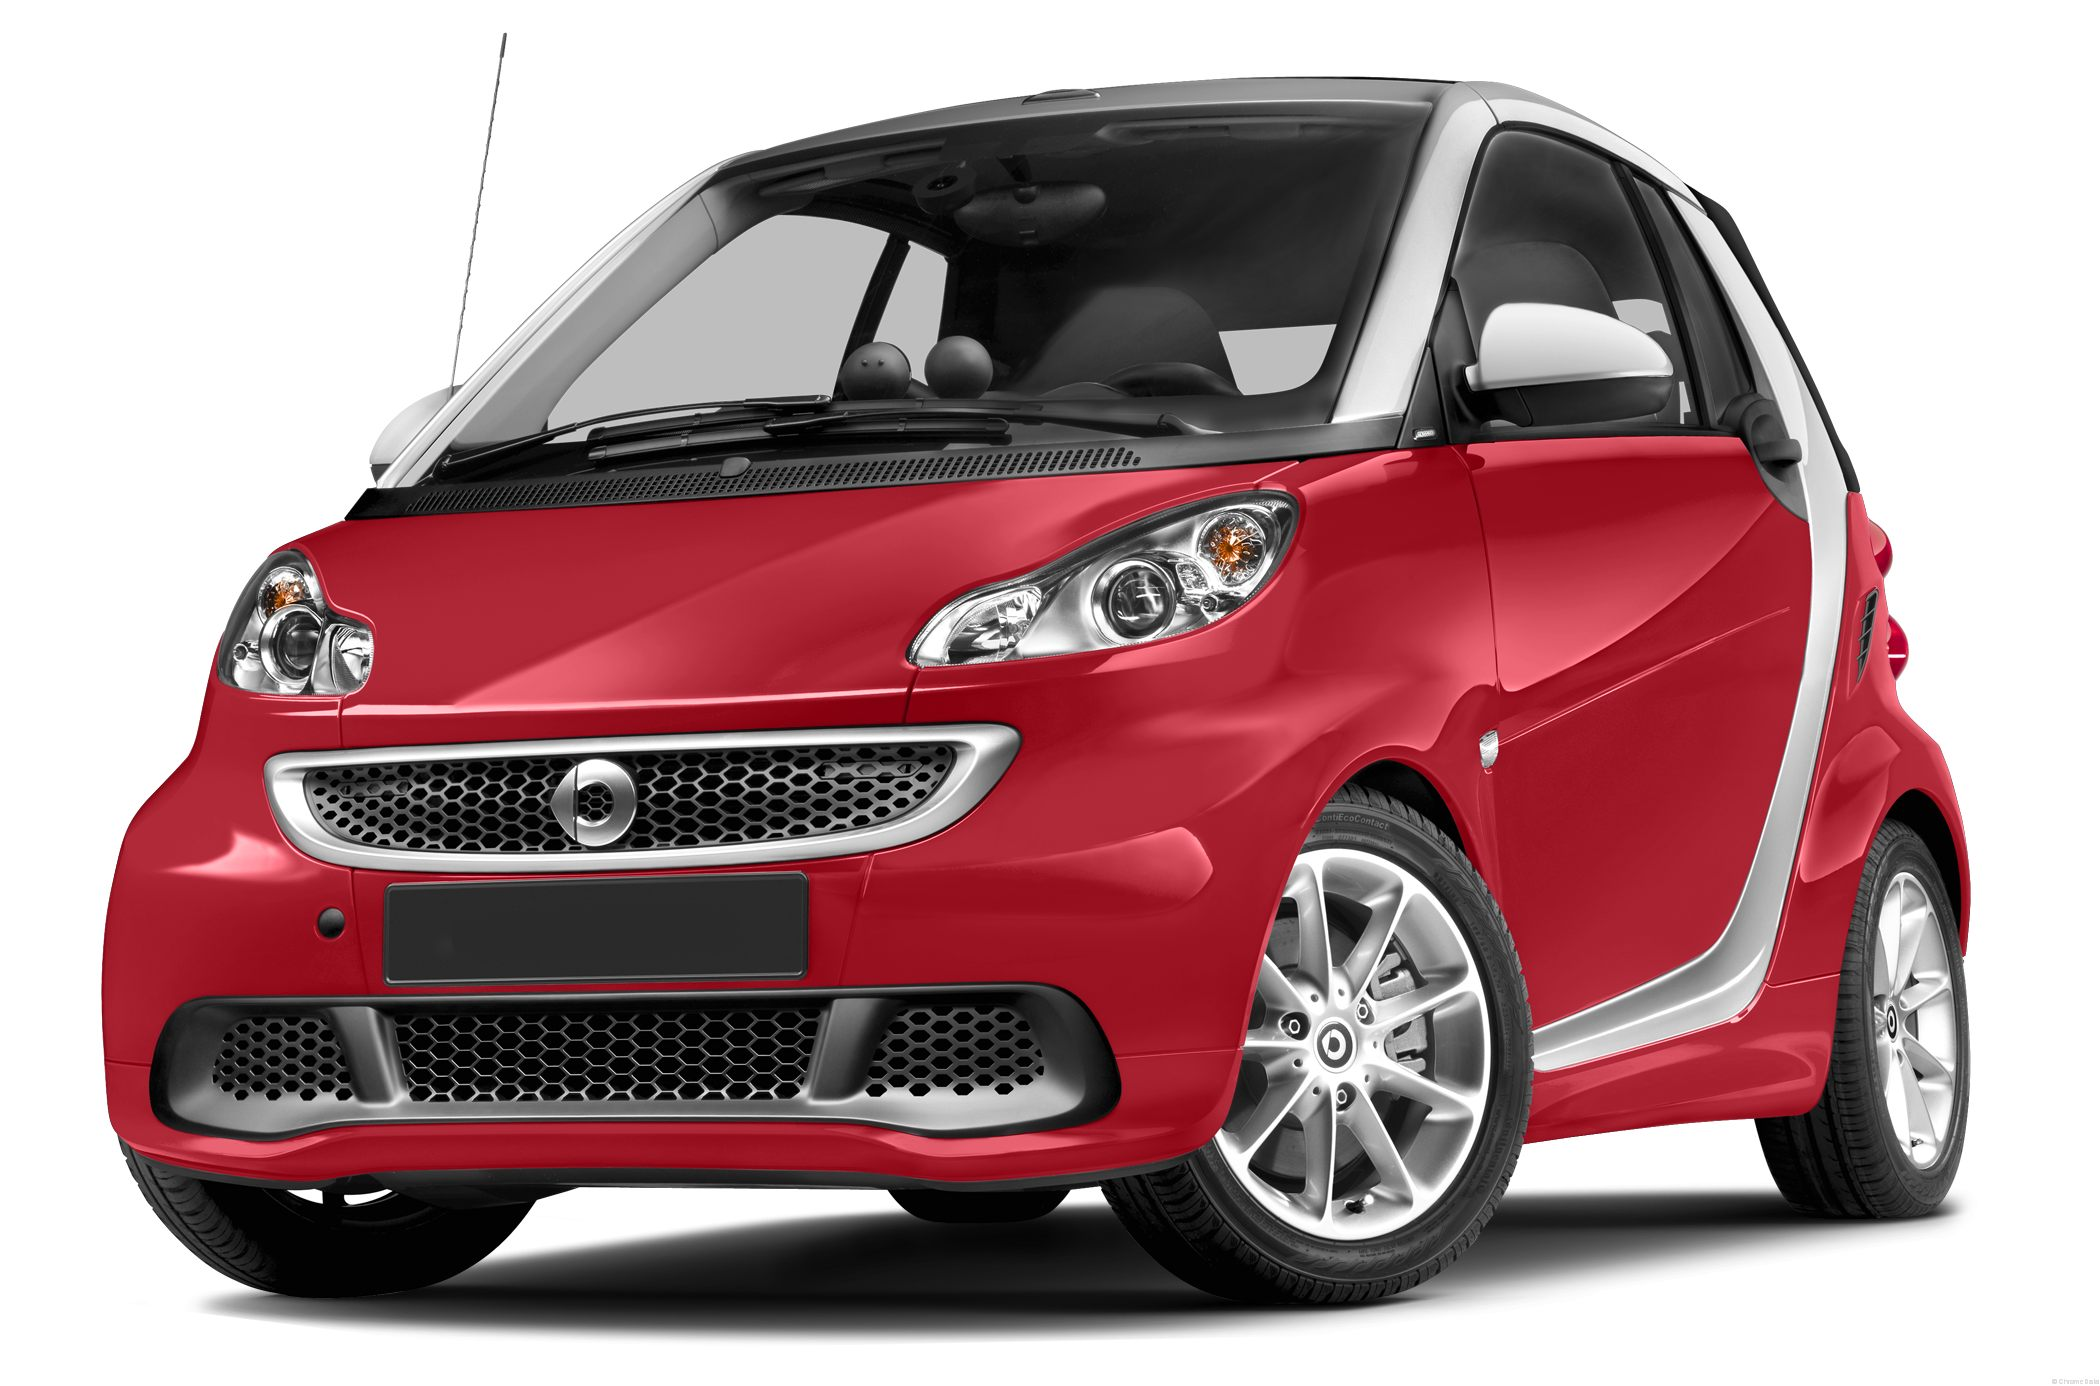 2013 Smart Fortwo #2